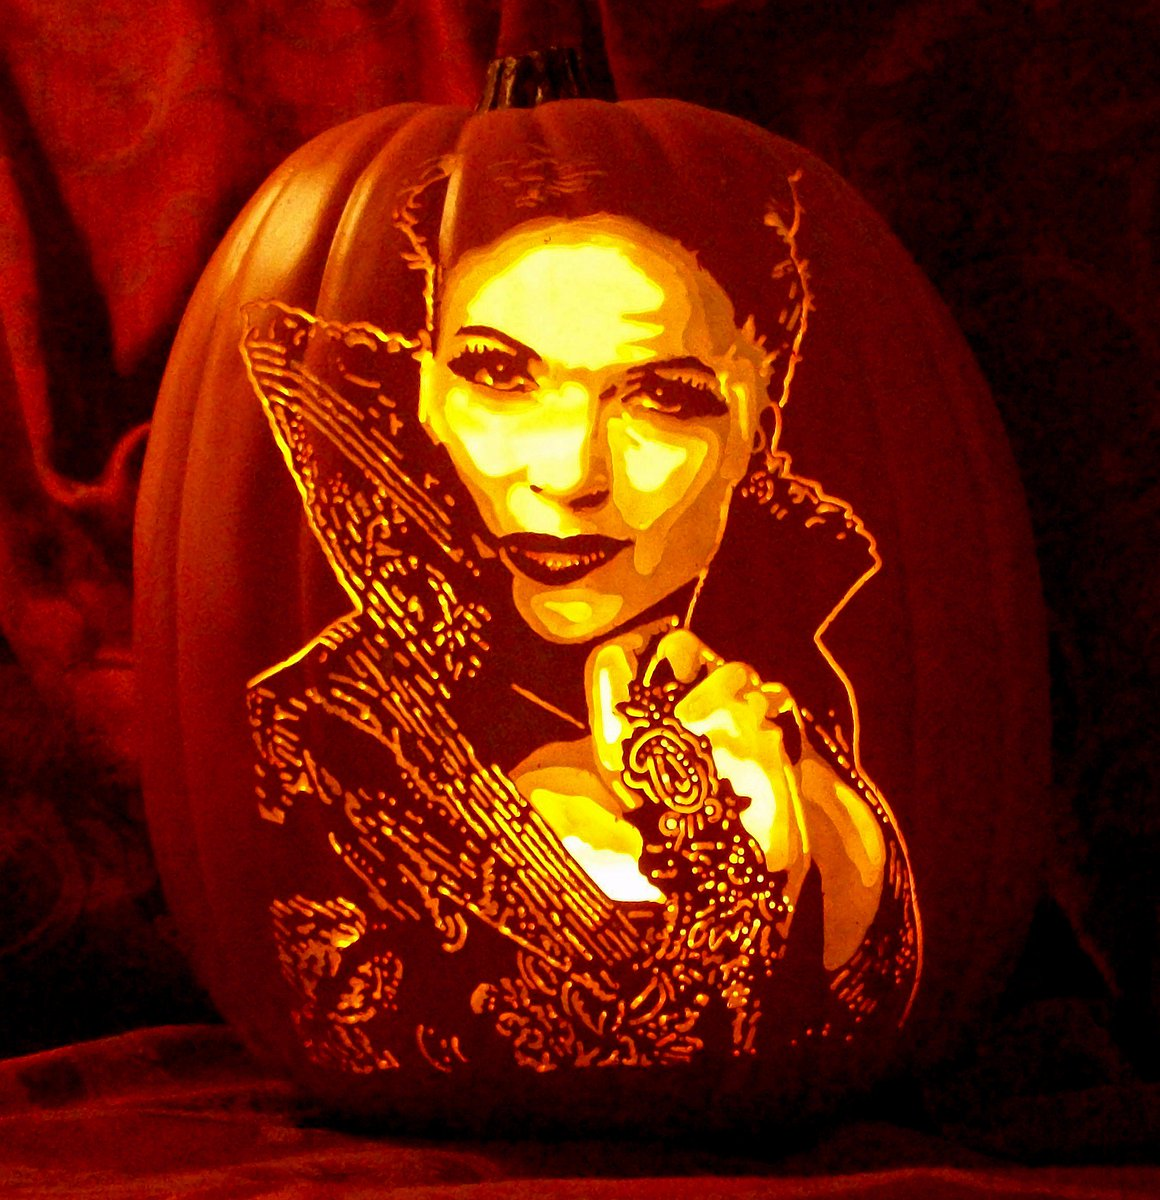 @OnceABC @LanaParrilla This may be my FAVORITE carve I have done!  #EvilQueen #HappyHalloween https://t.co/2z4iYXUTWw